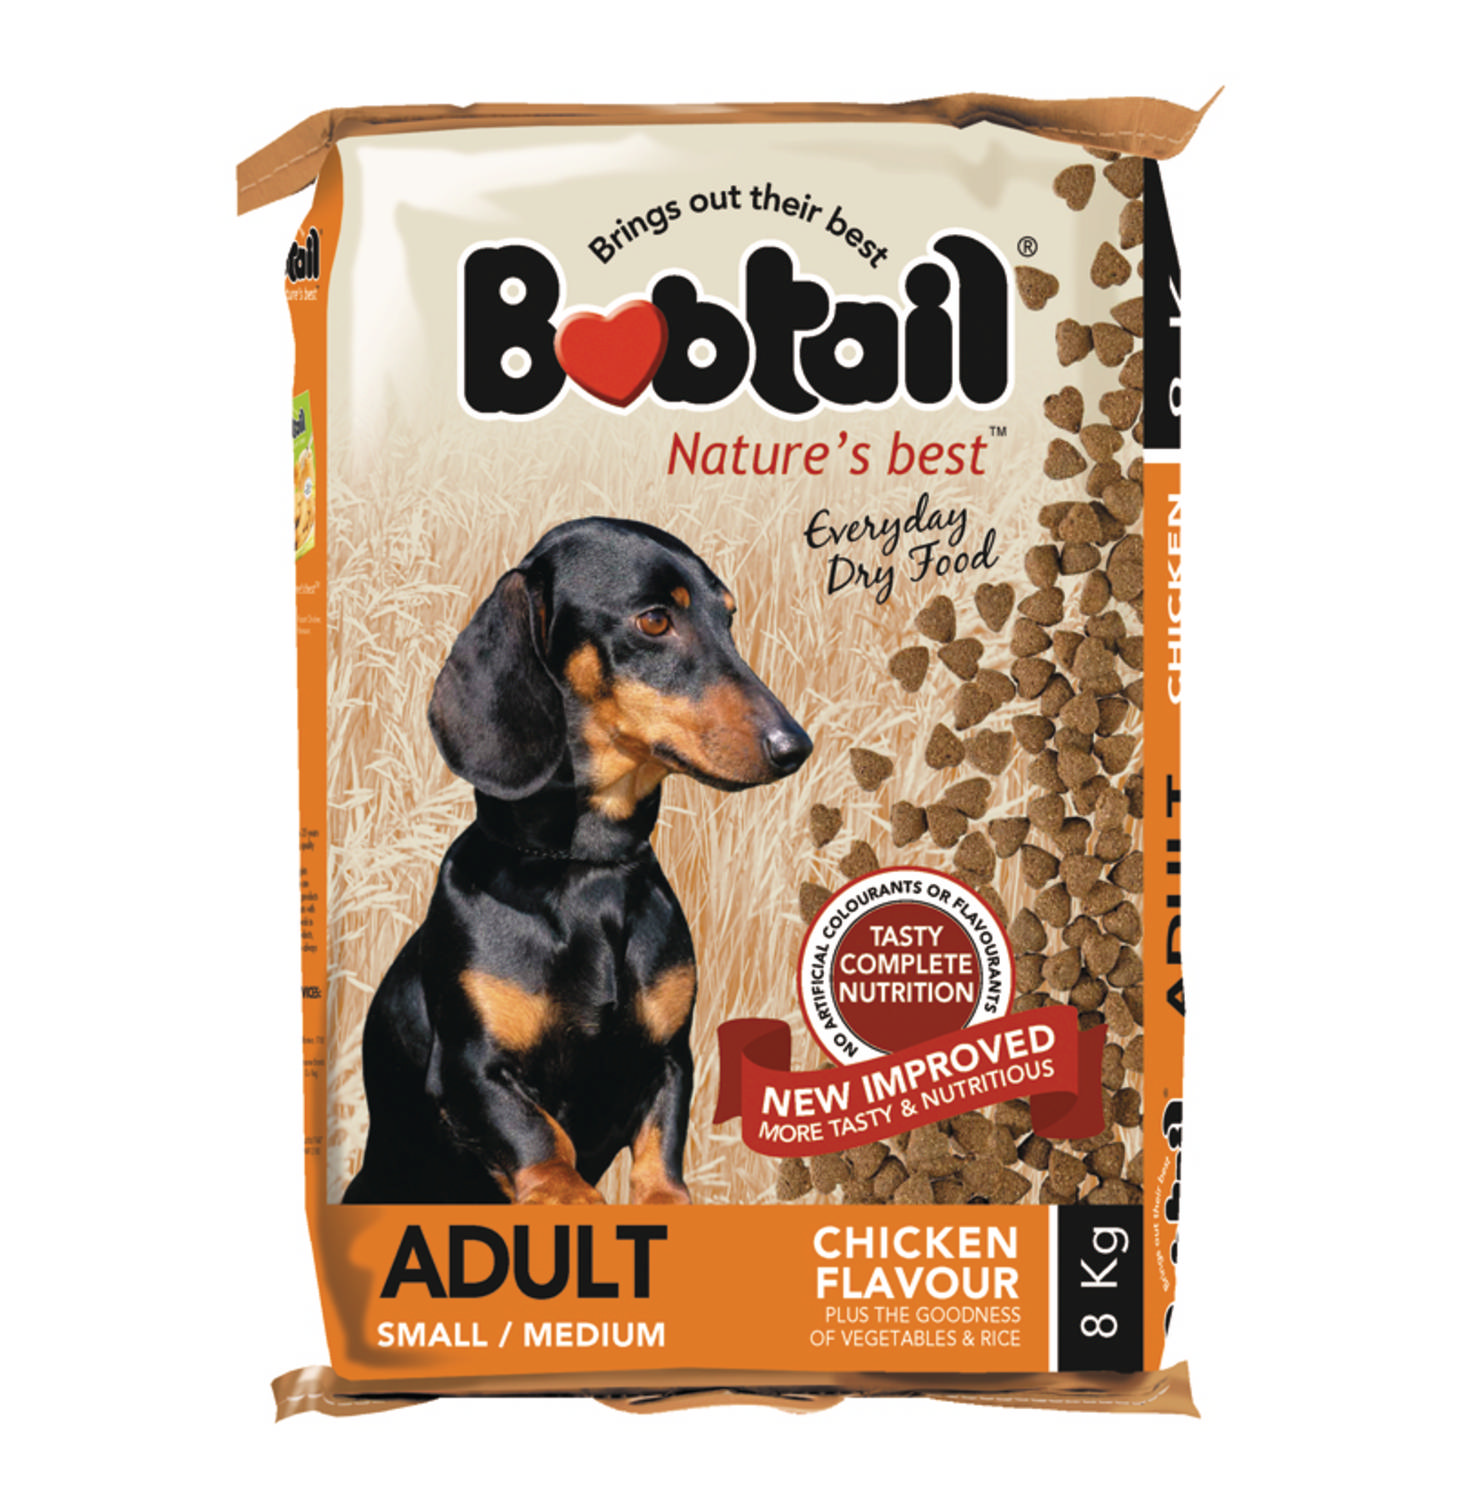 Bobtail Everyday Dry Foods